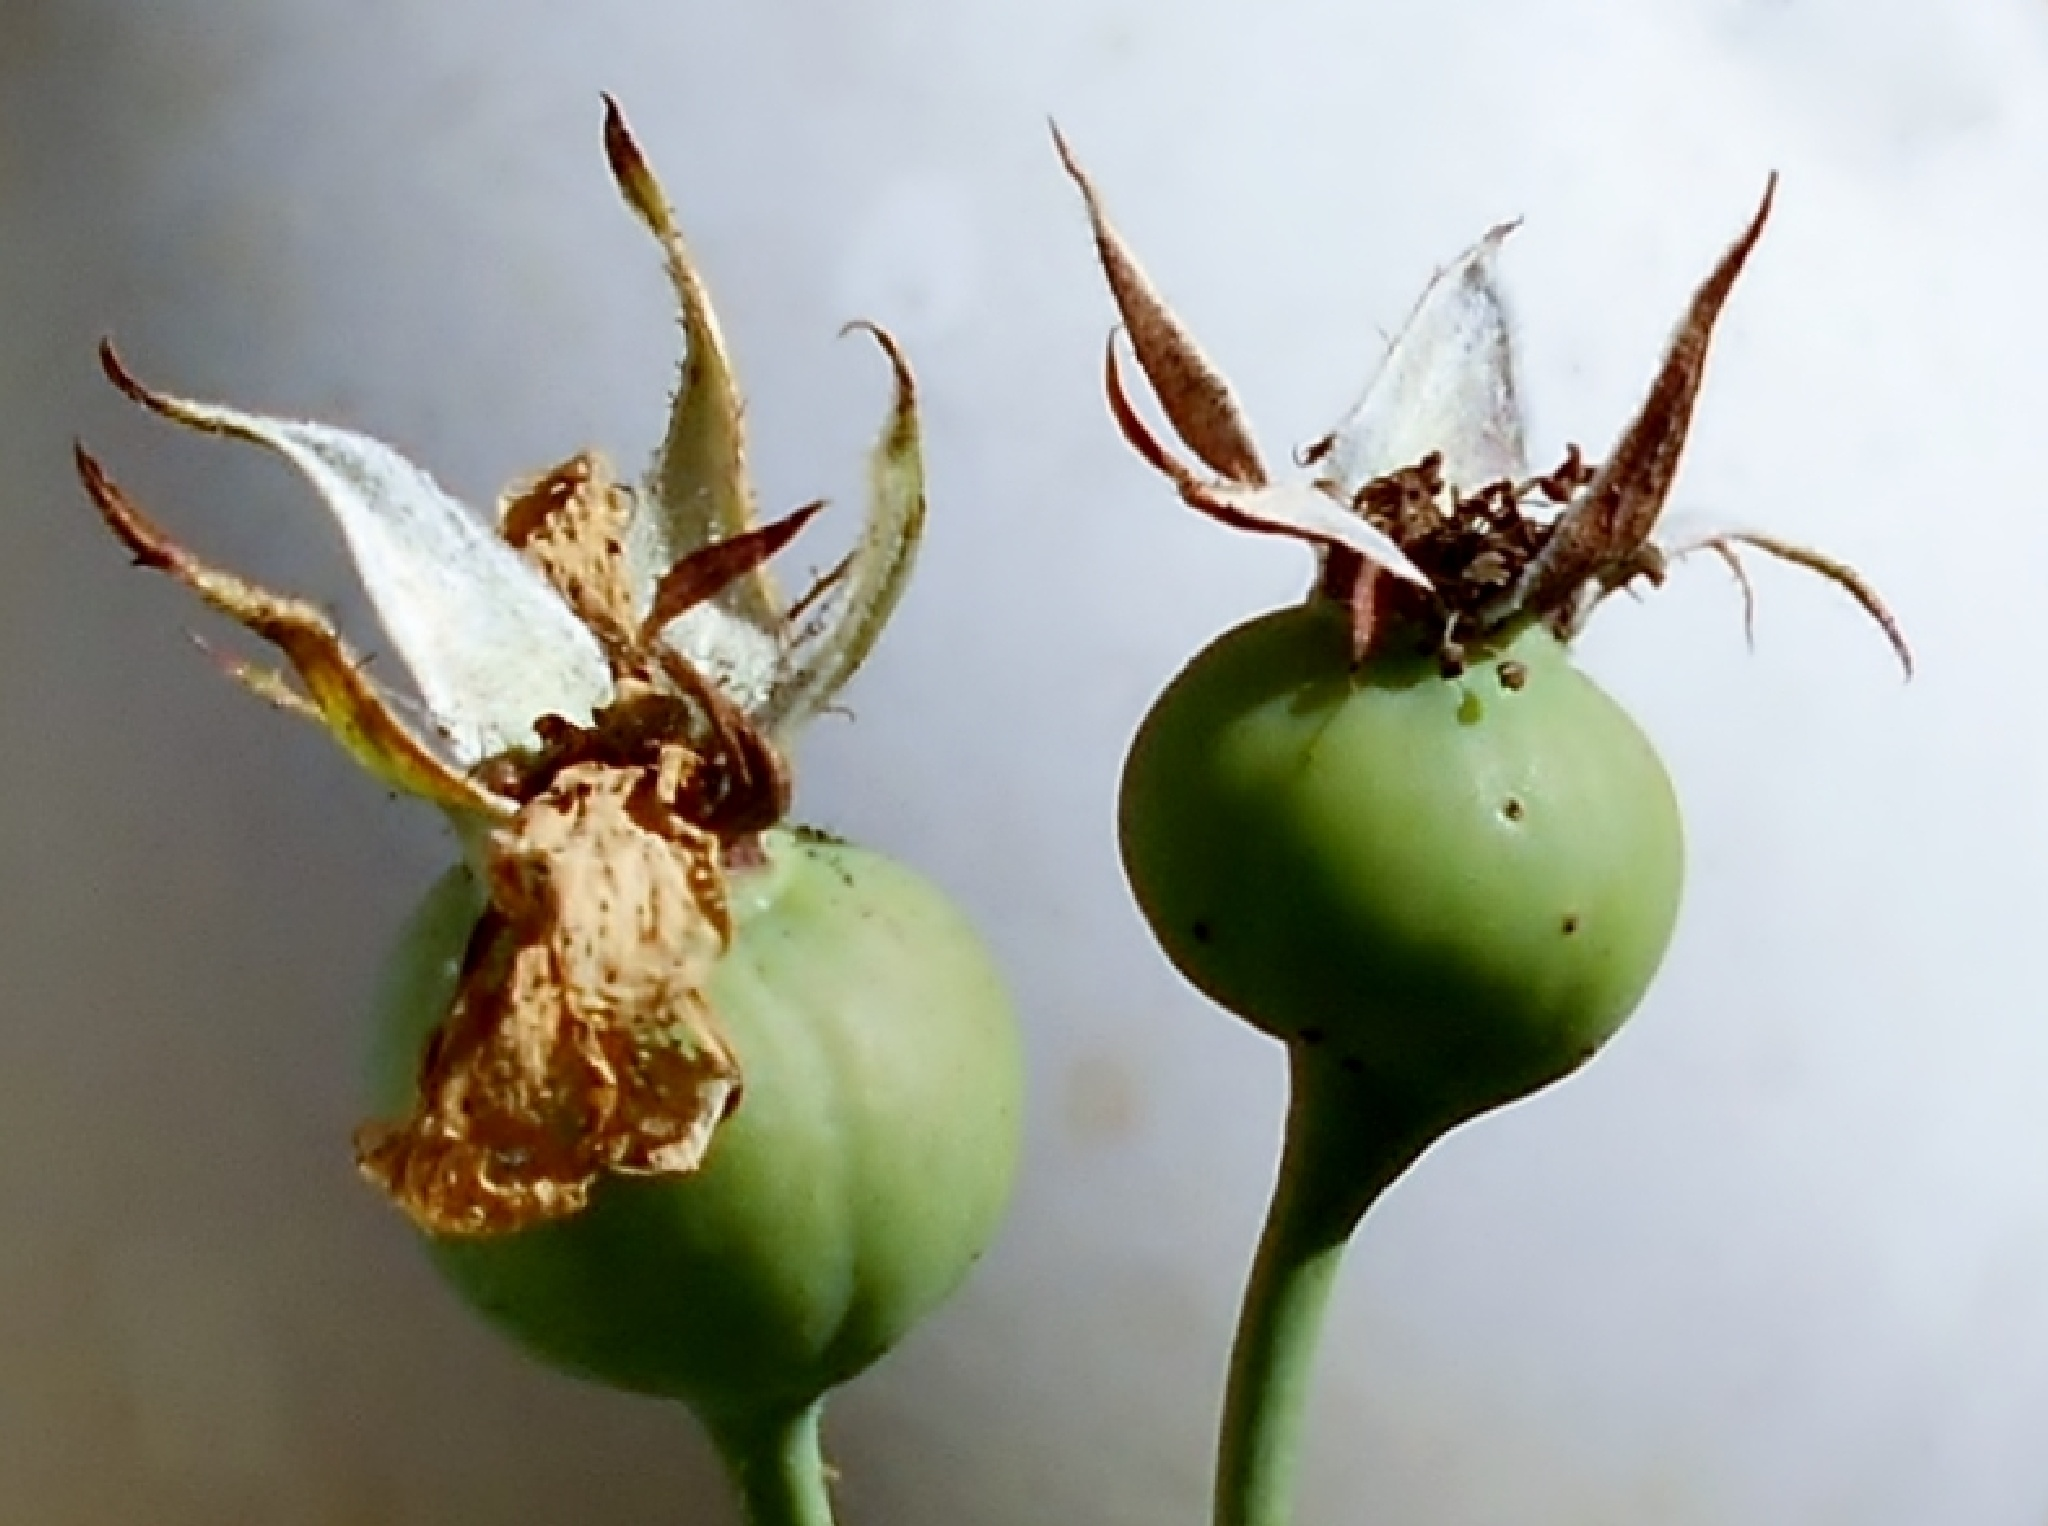 November pleasure IV by Barbara Bumm